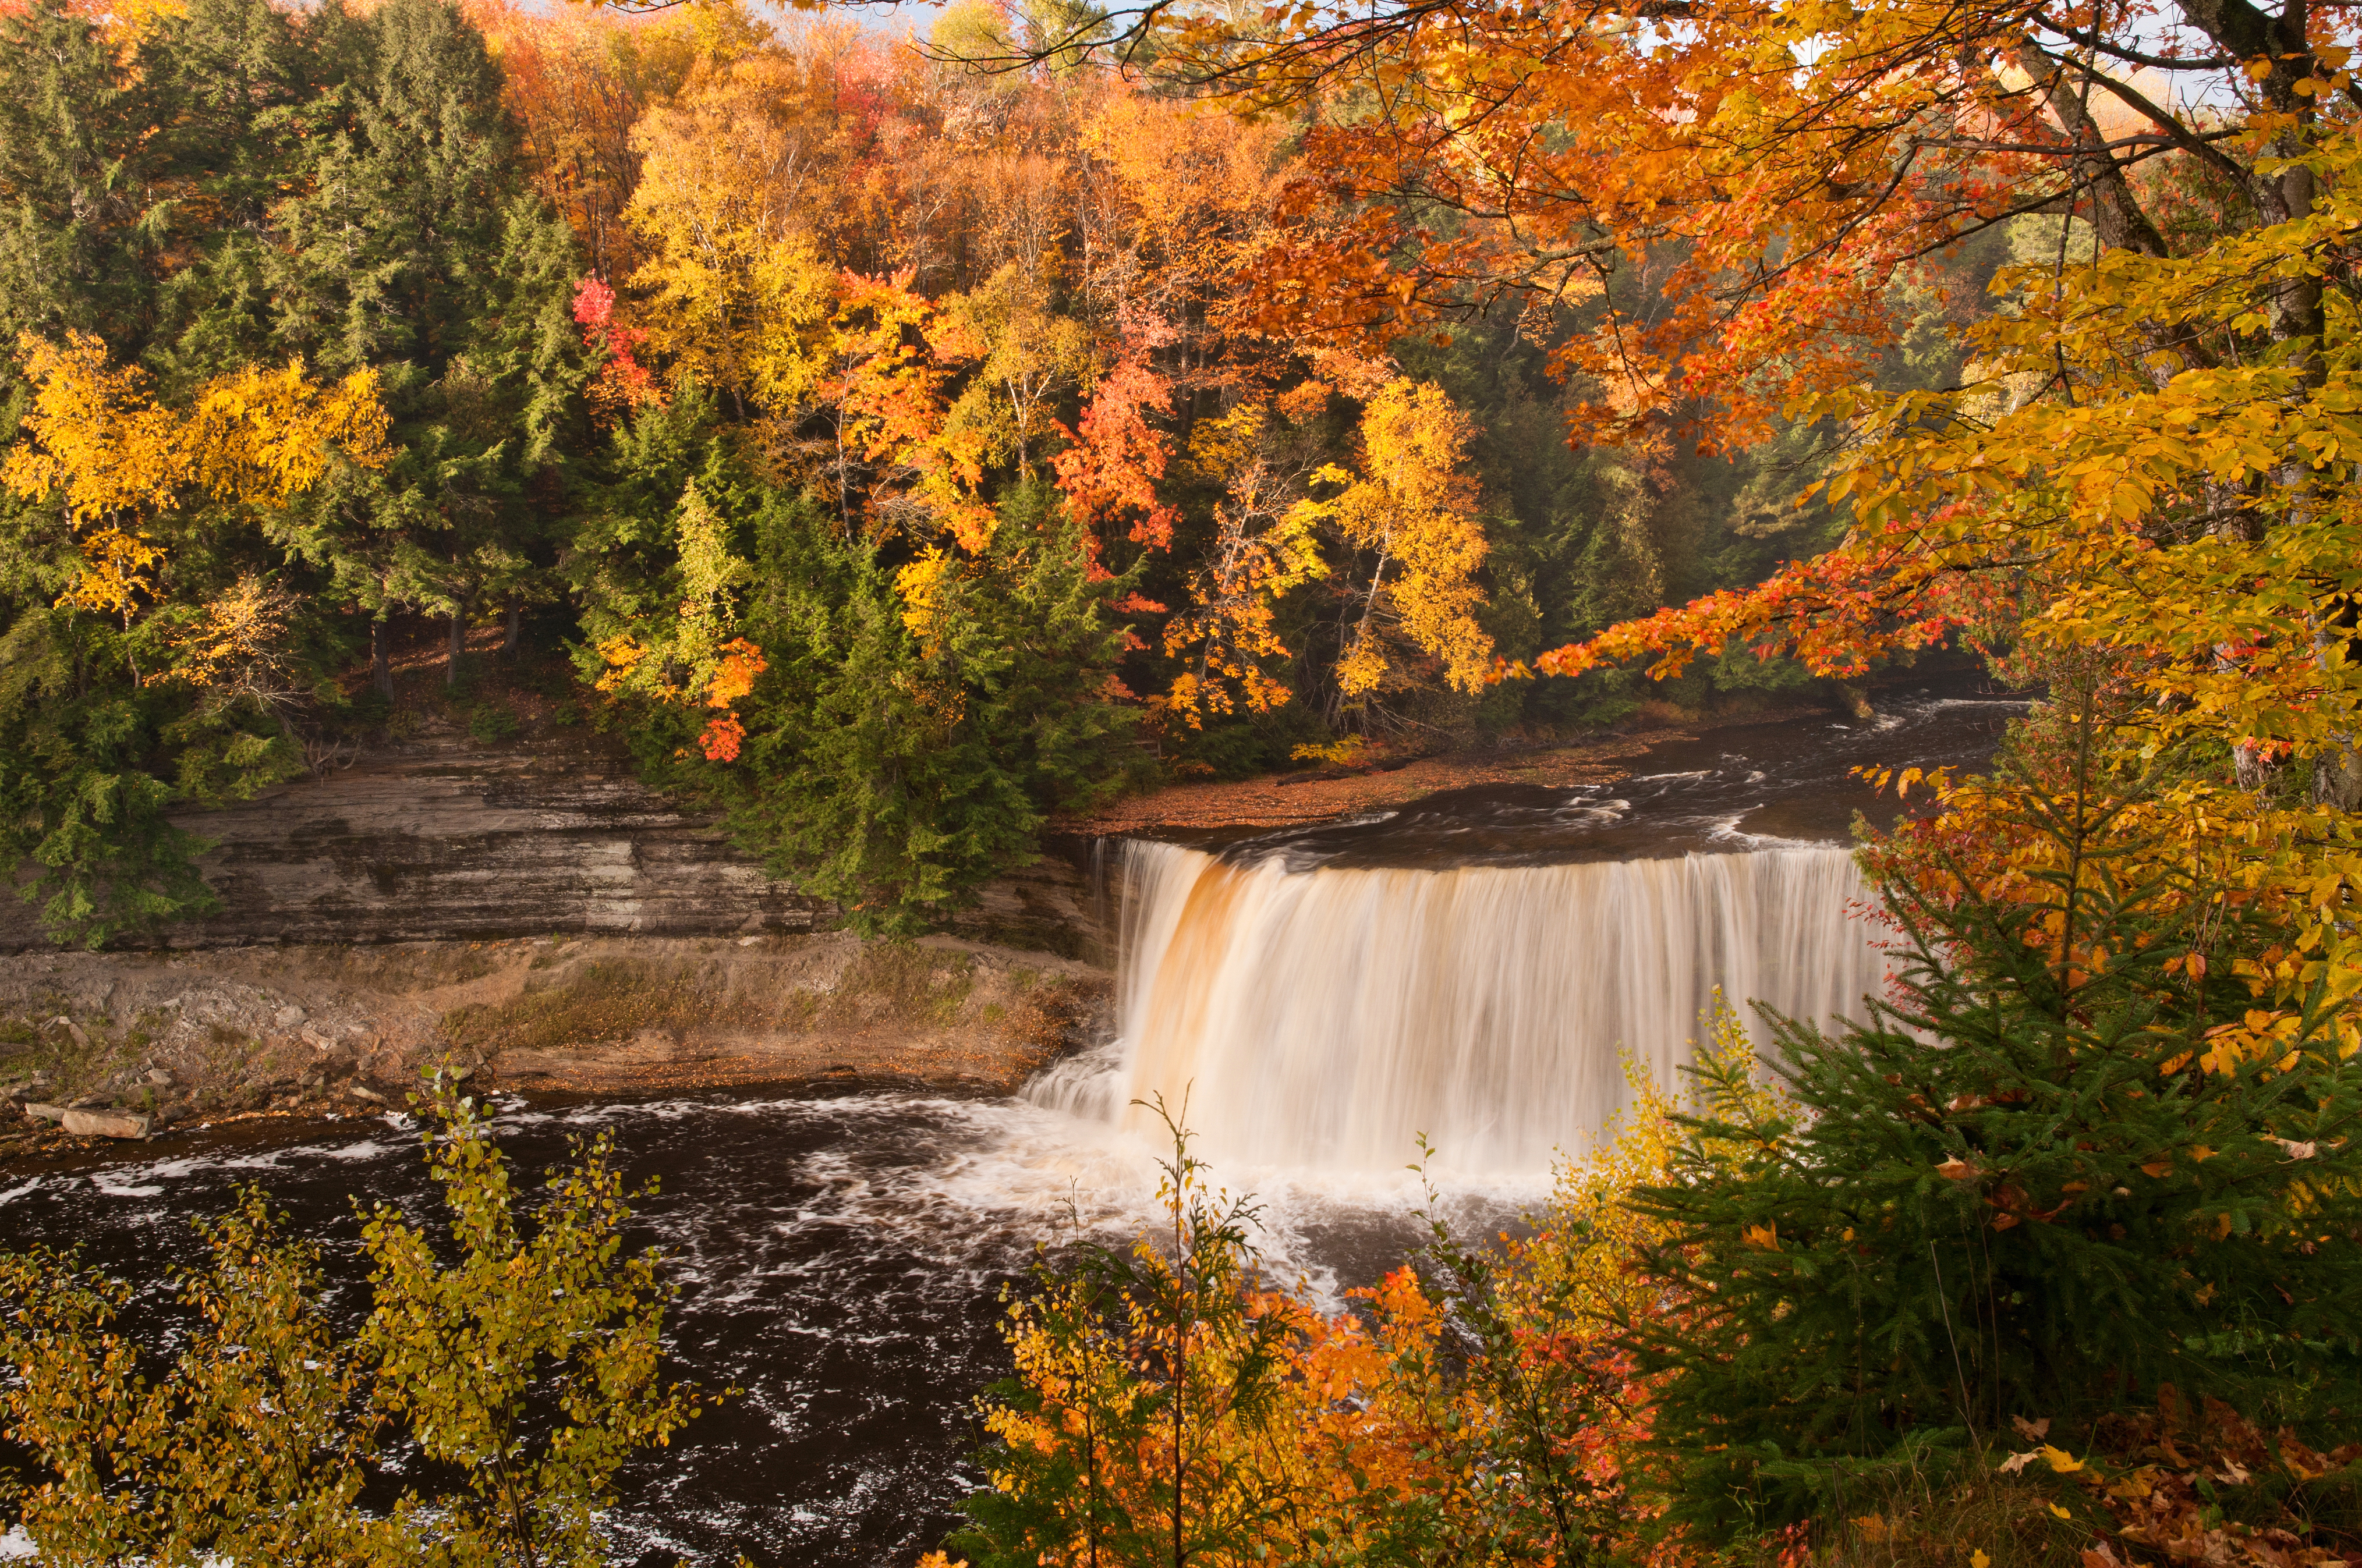 A waterfall can be seen through a narrow window between red, orange, yellow, and green leaves.